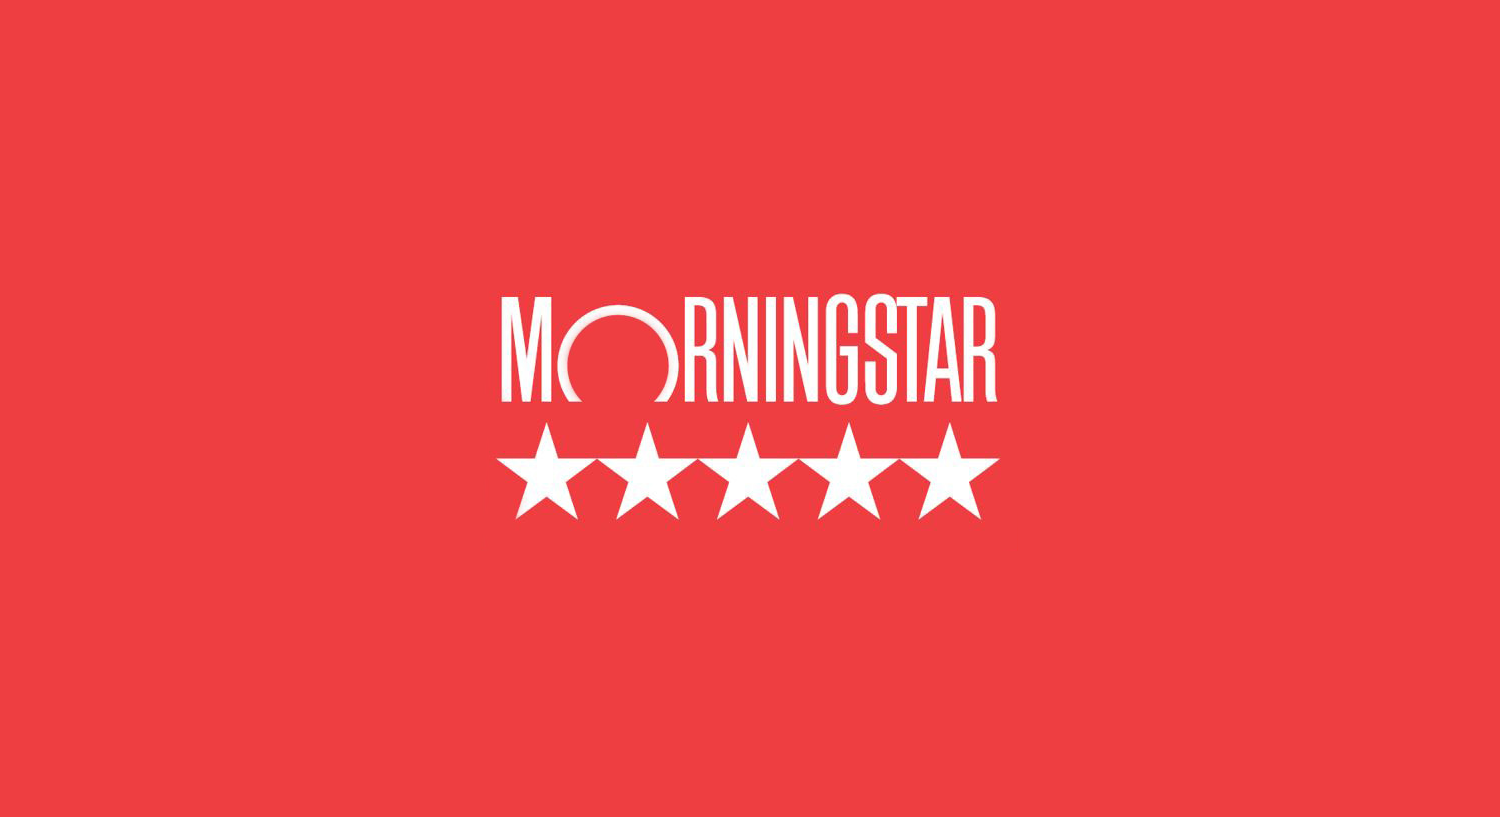 Morningstar-Recognition-2.png